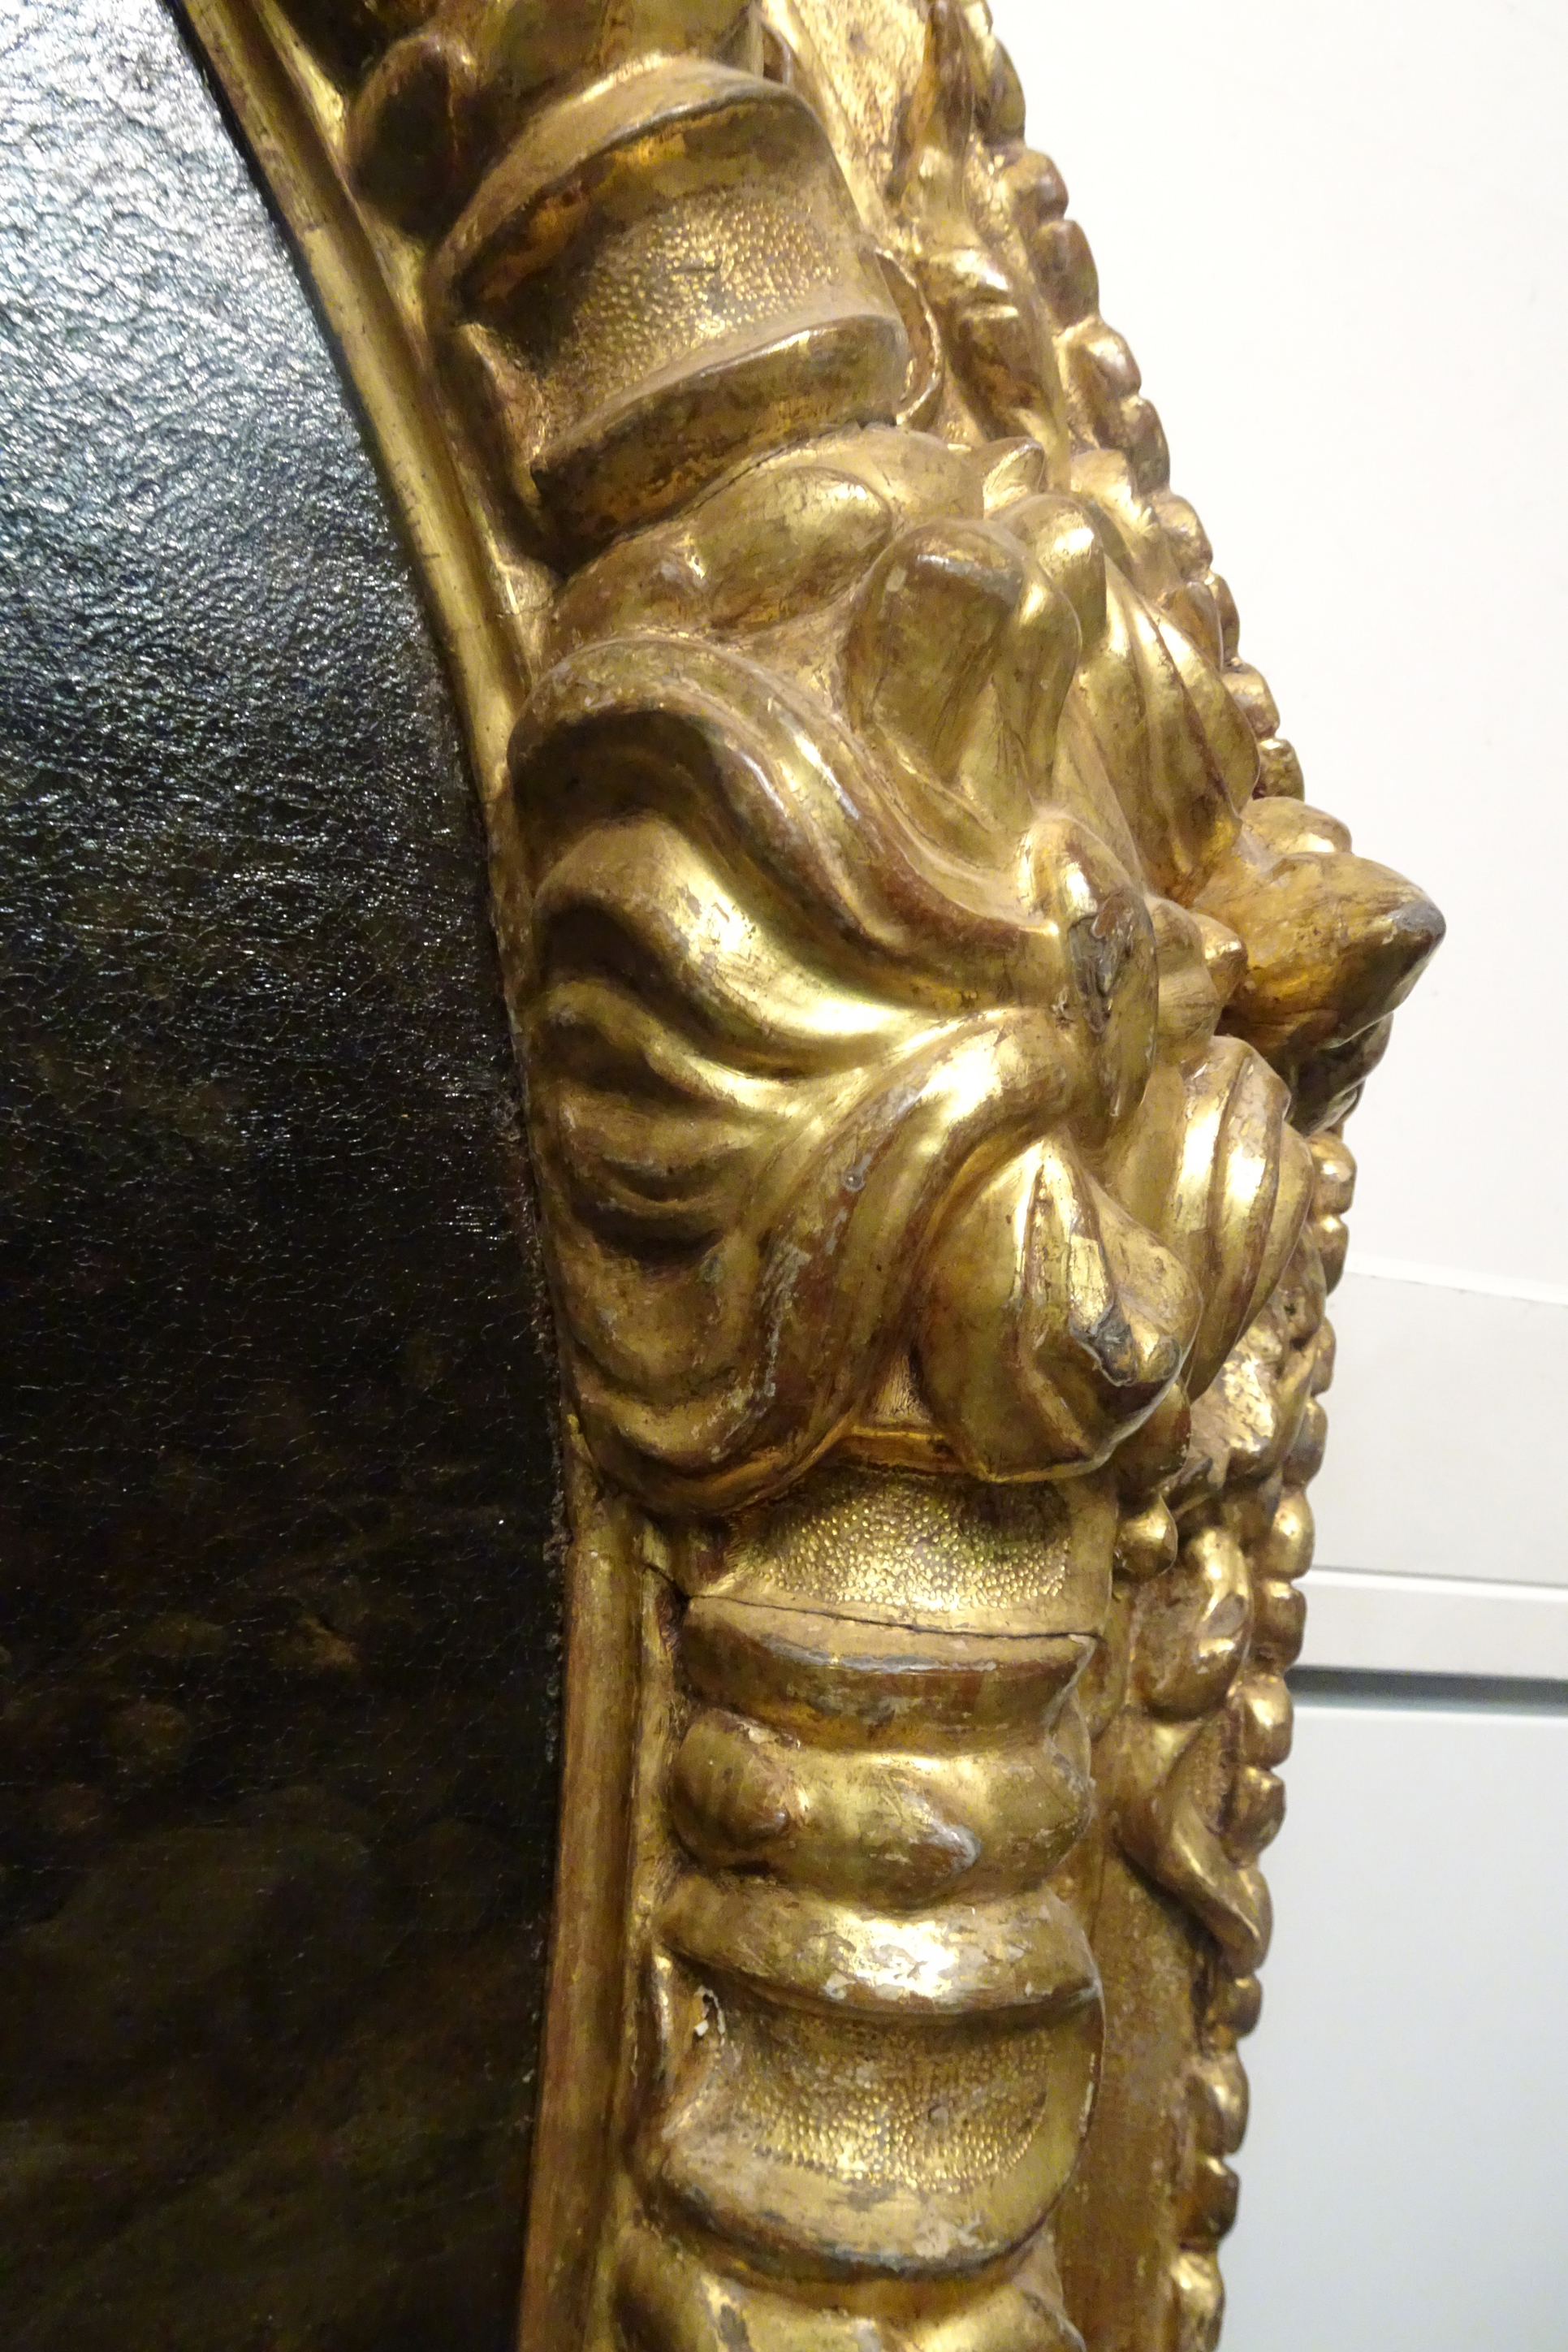 16A Clasp showing torch or lion s mane